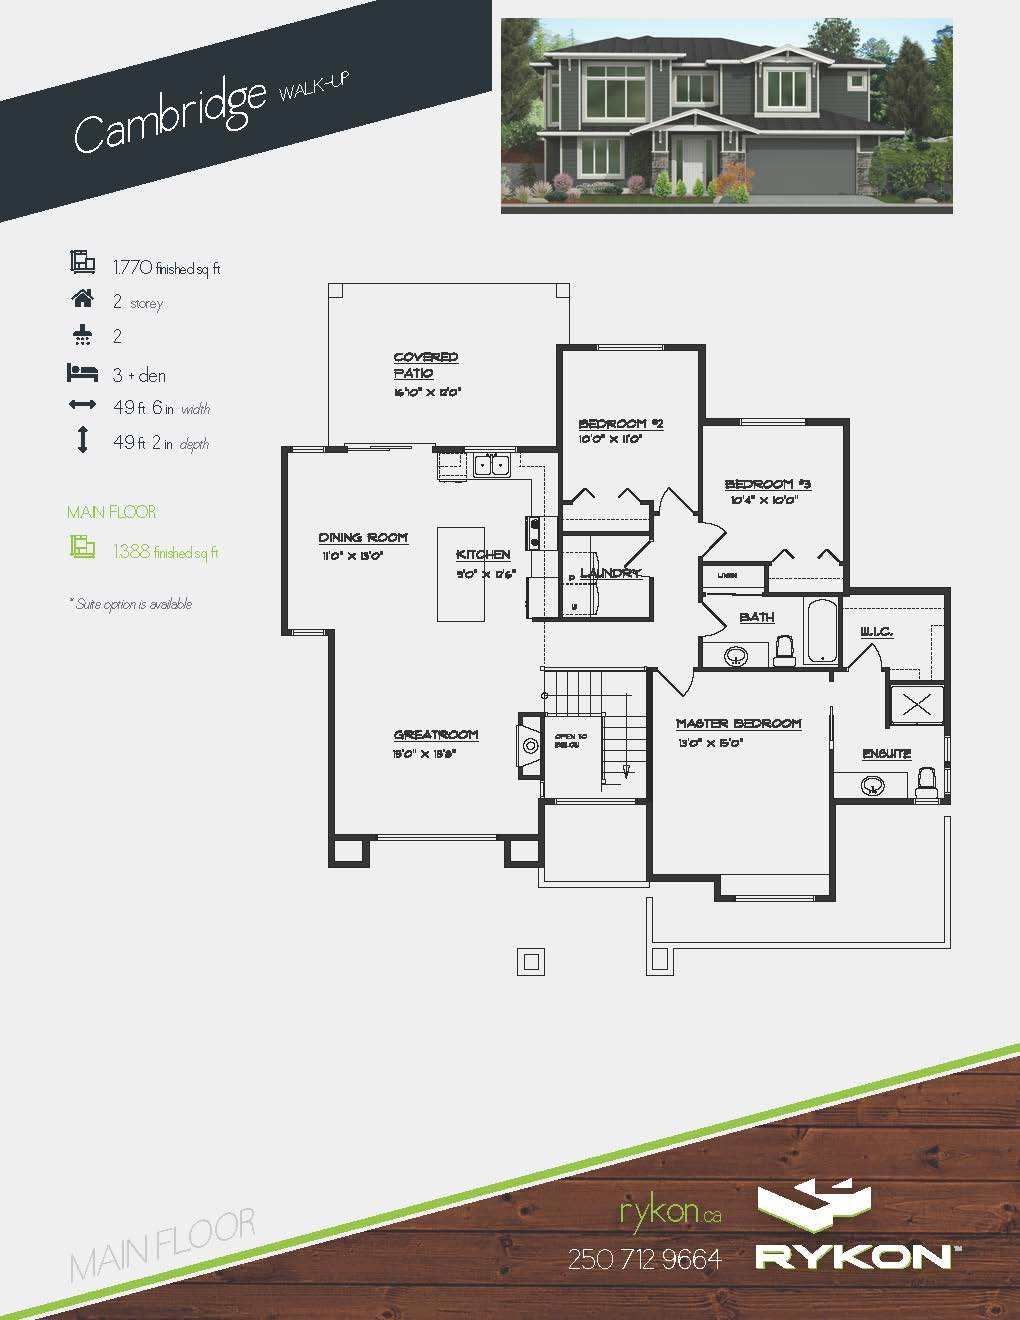 MRH - Cambridge Page 1 Floorplan